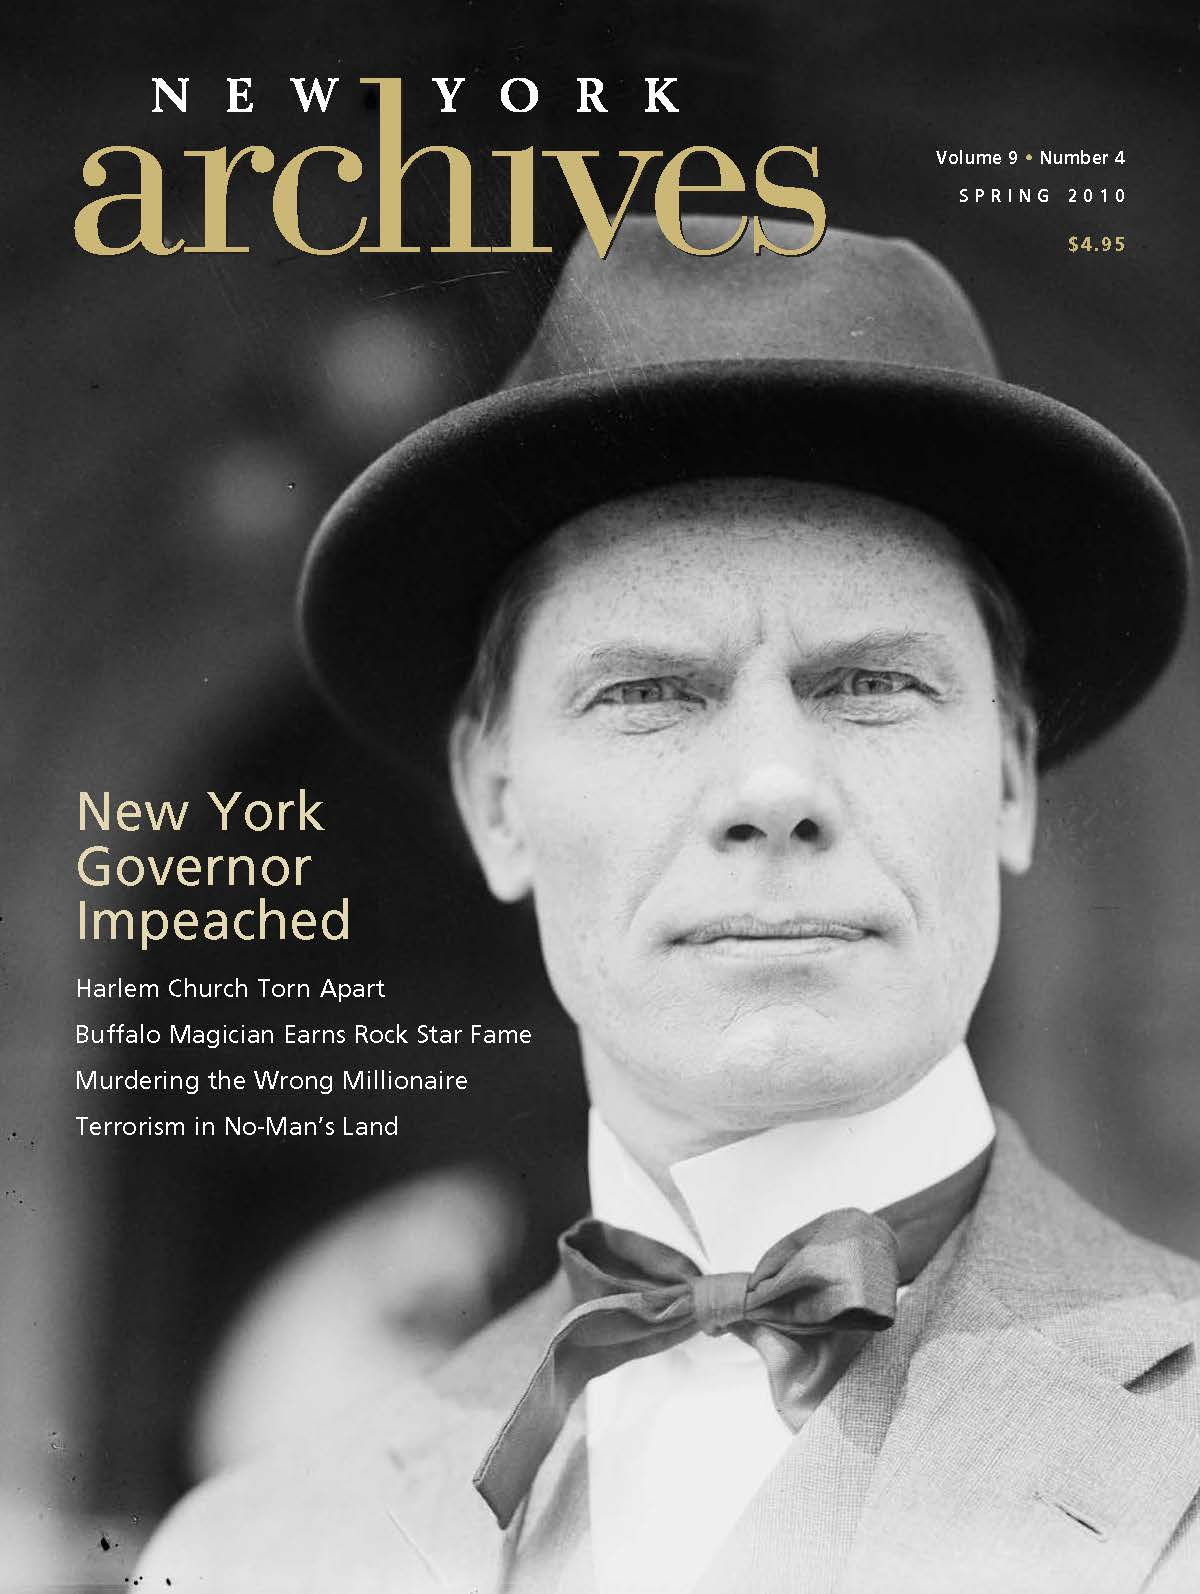 cover_archivesmag_spring2010.jpg